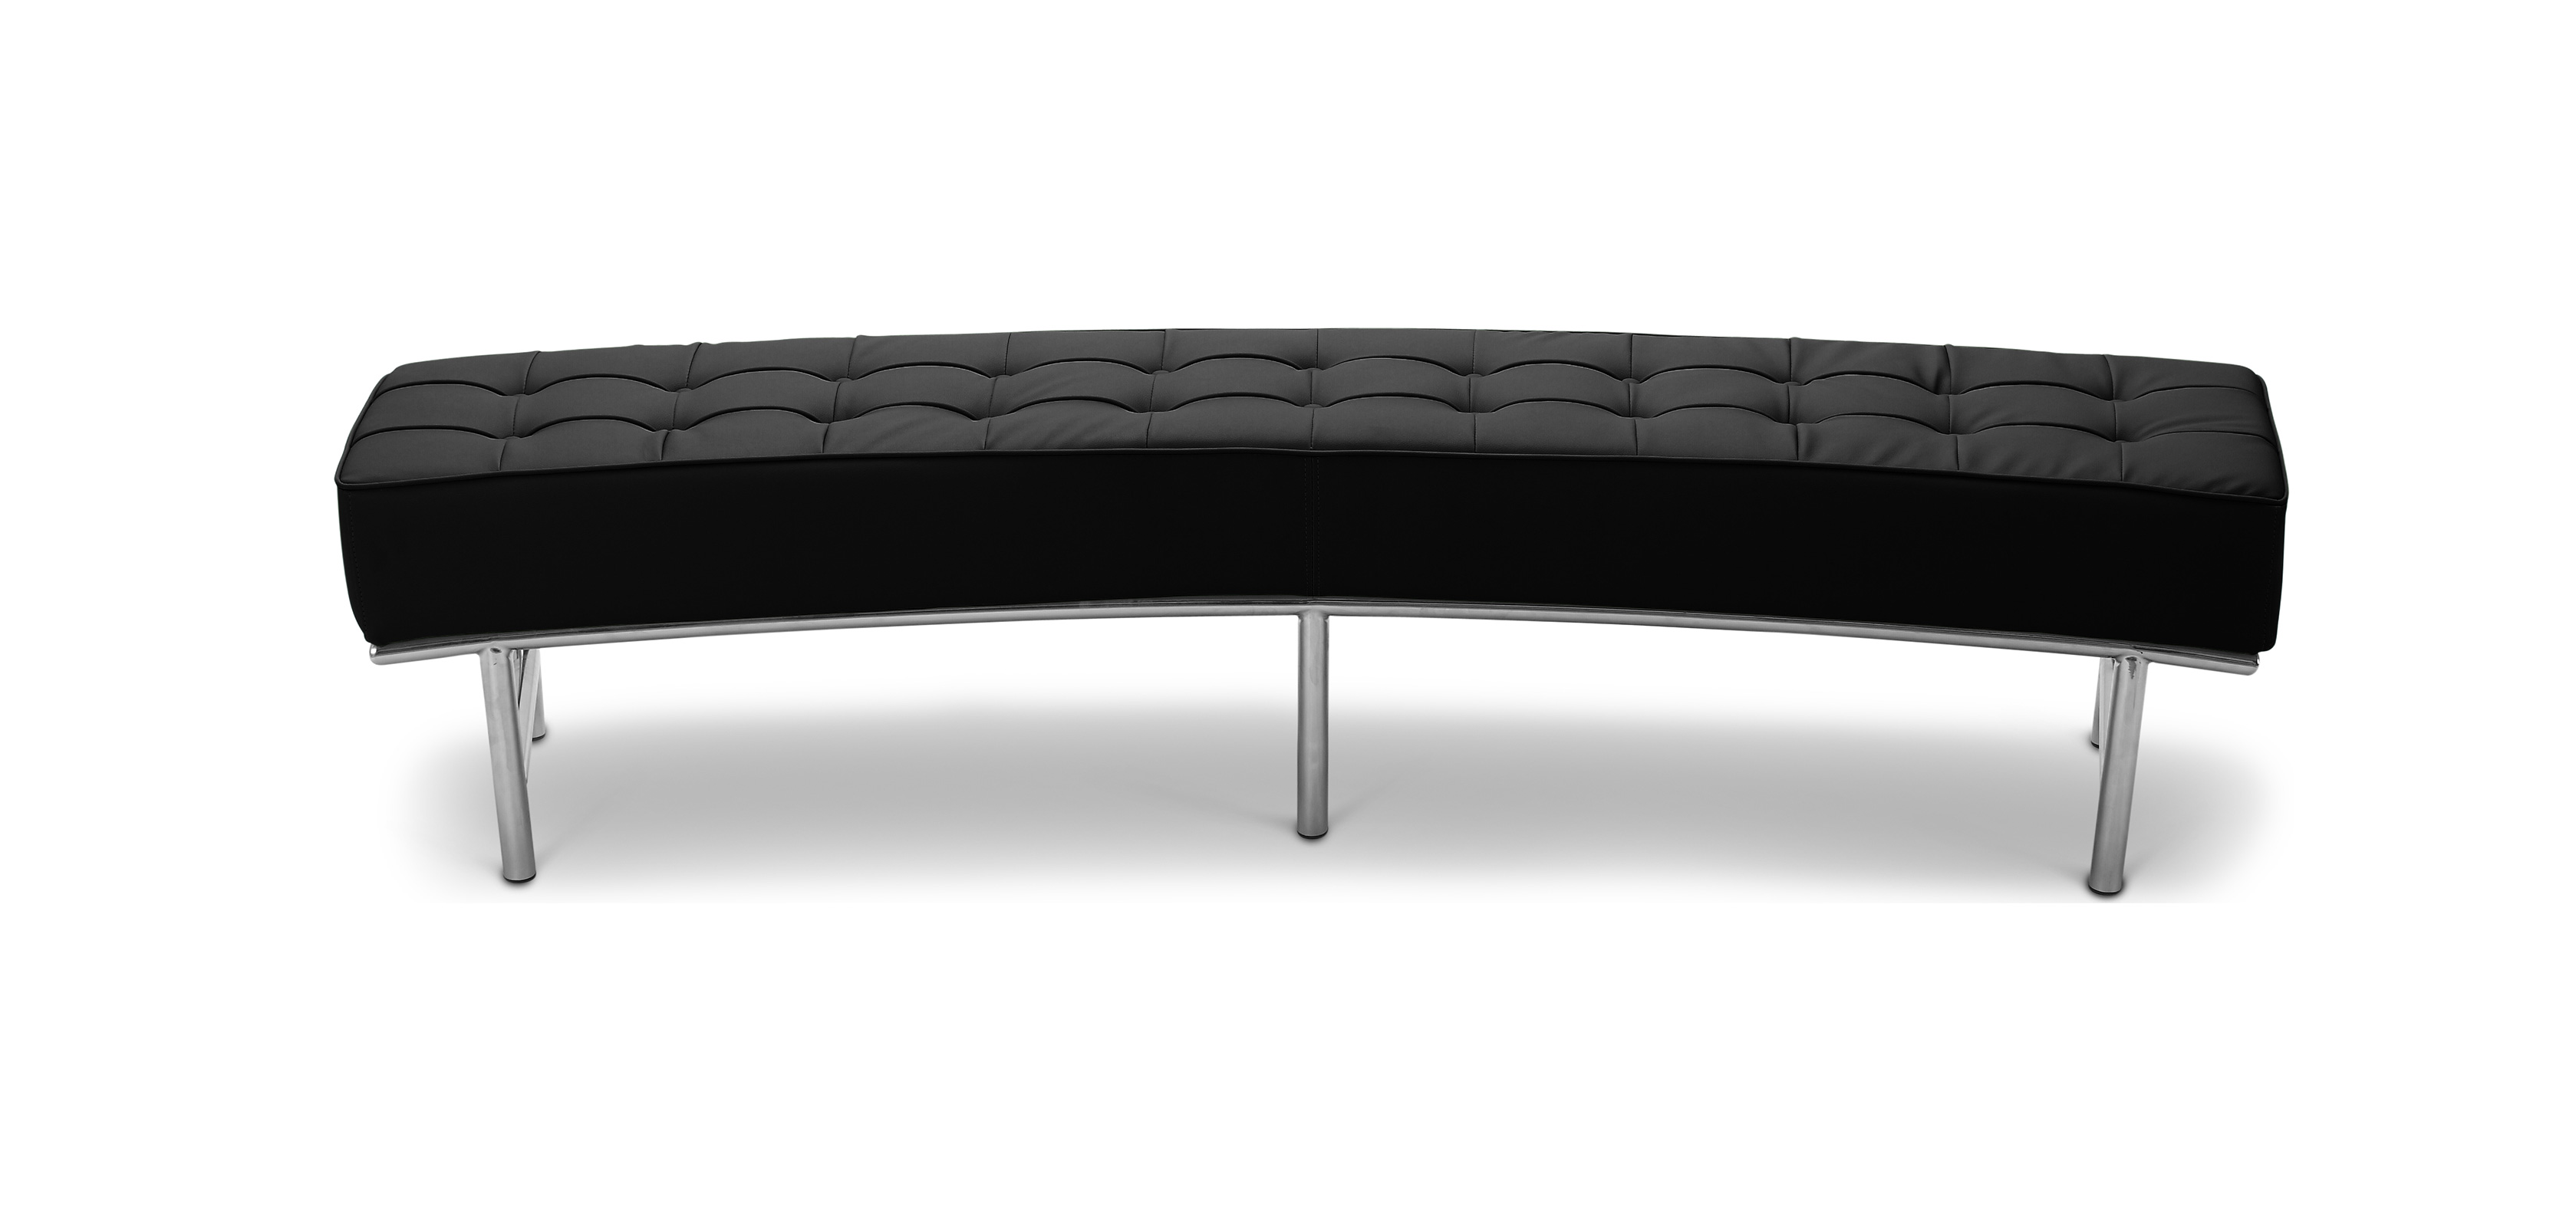 monte carlo sofa bench eileen gray style faux leather benches. Black Bedroom Furniture Sets. Home Design Ideas